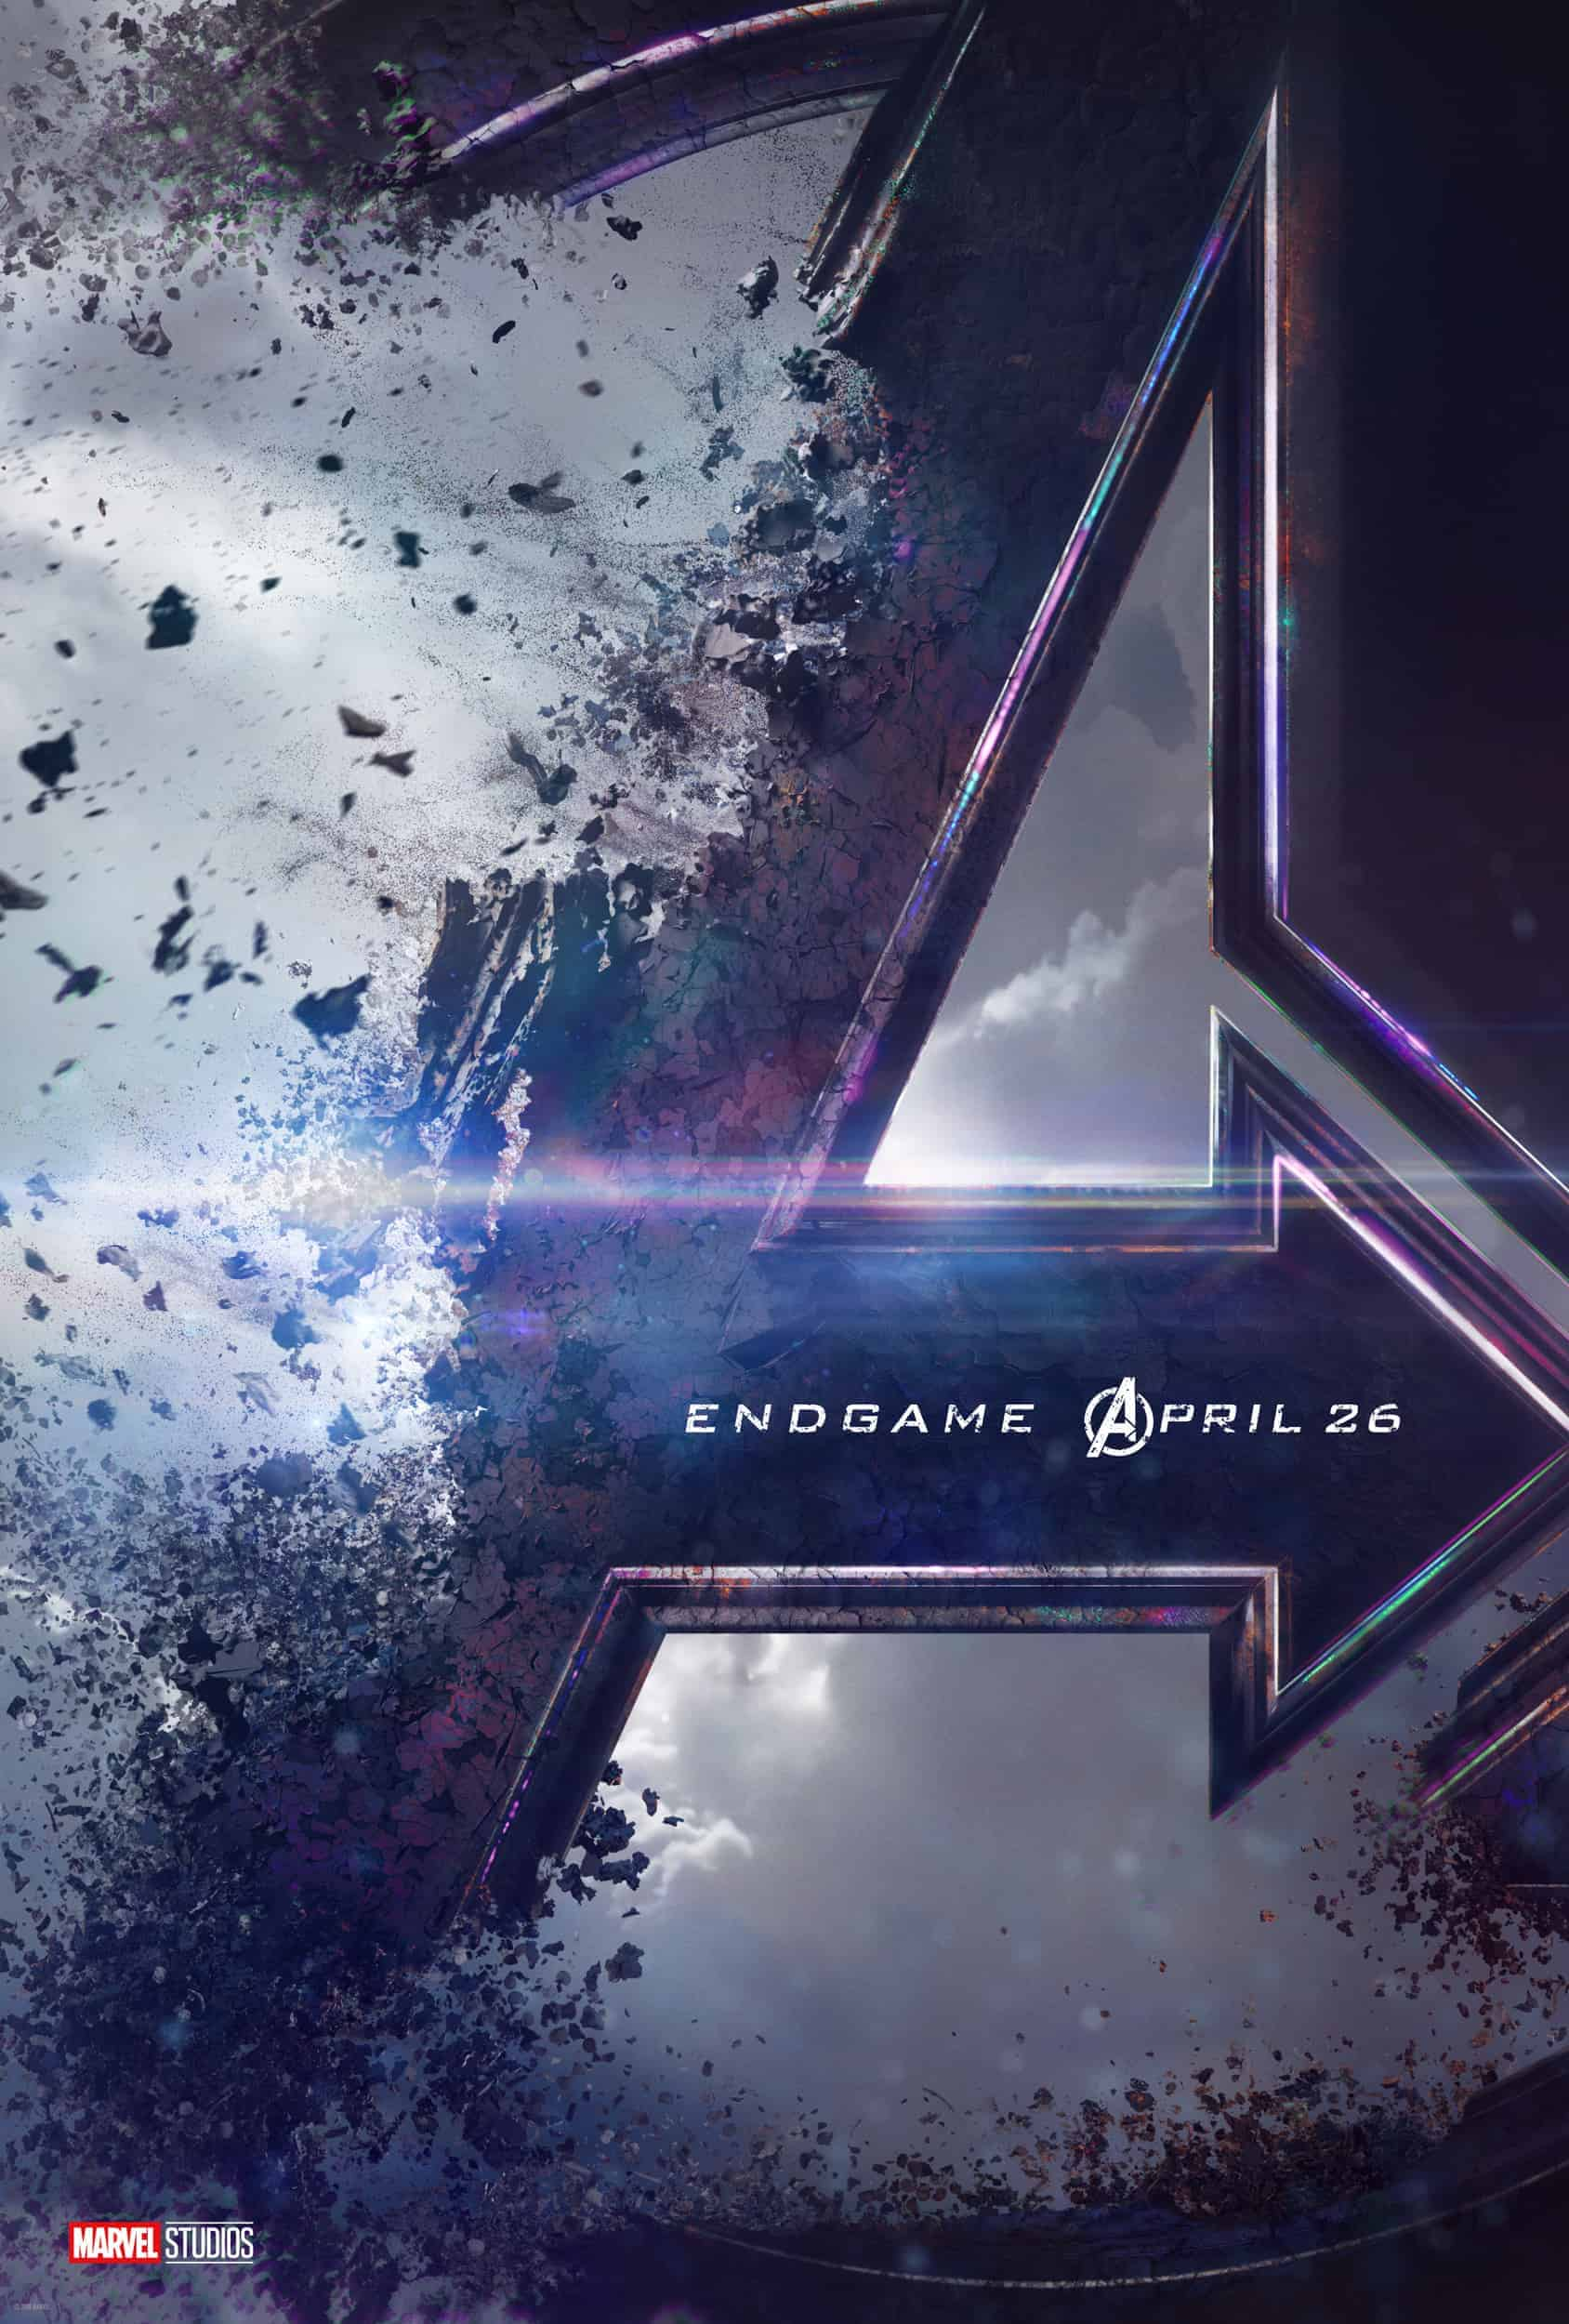 Avengers Endgame Coming To Theaters April 26,2019